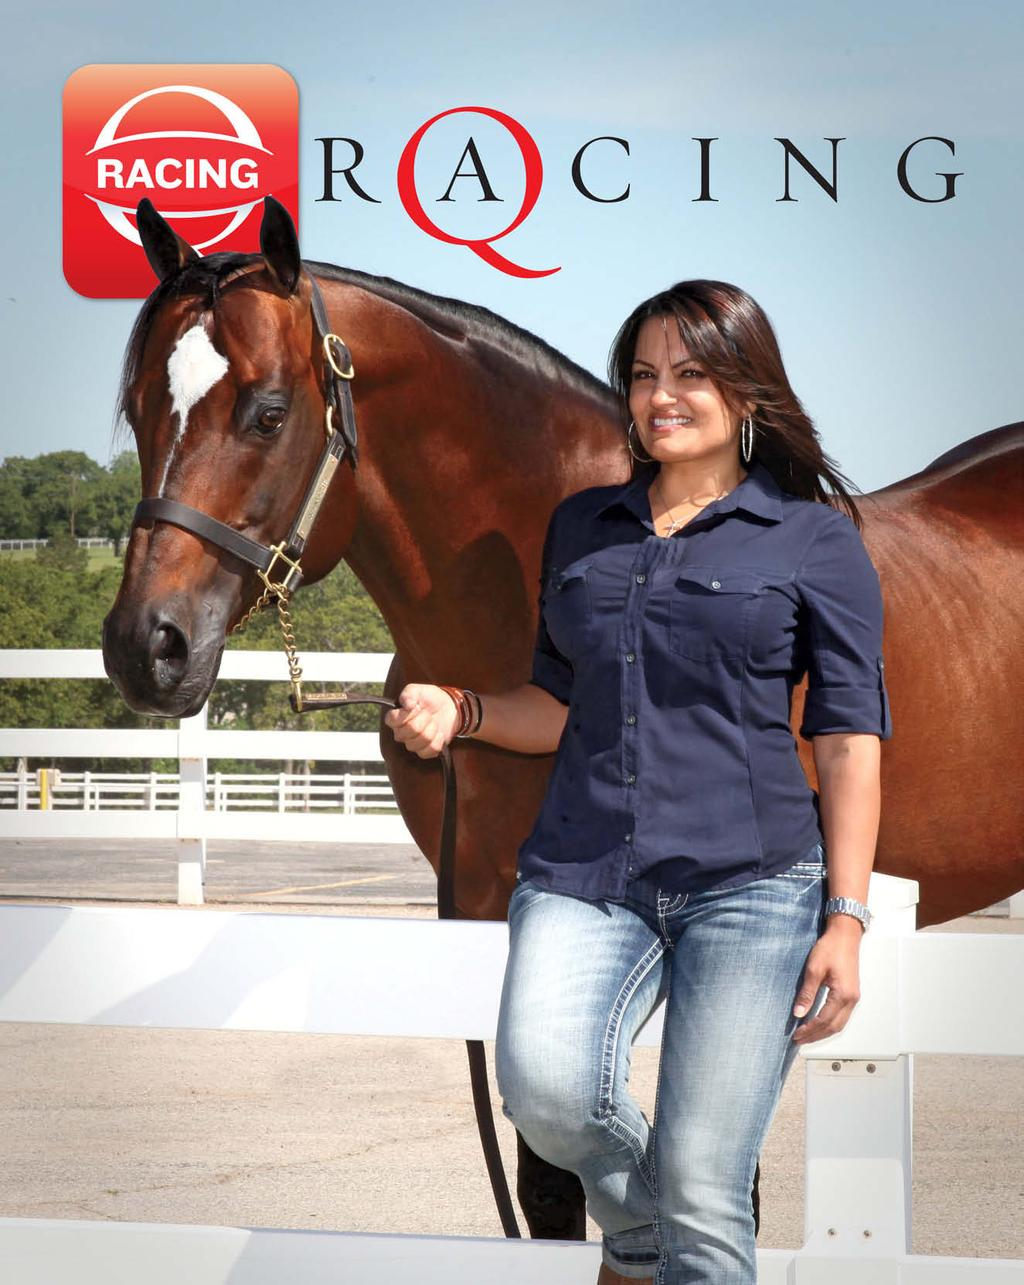 JULY 2012 Q-RACING JOURNAL CELINA MOLINA CORONA CARTEL S LEADING LADY GILLESPIE